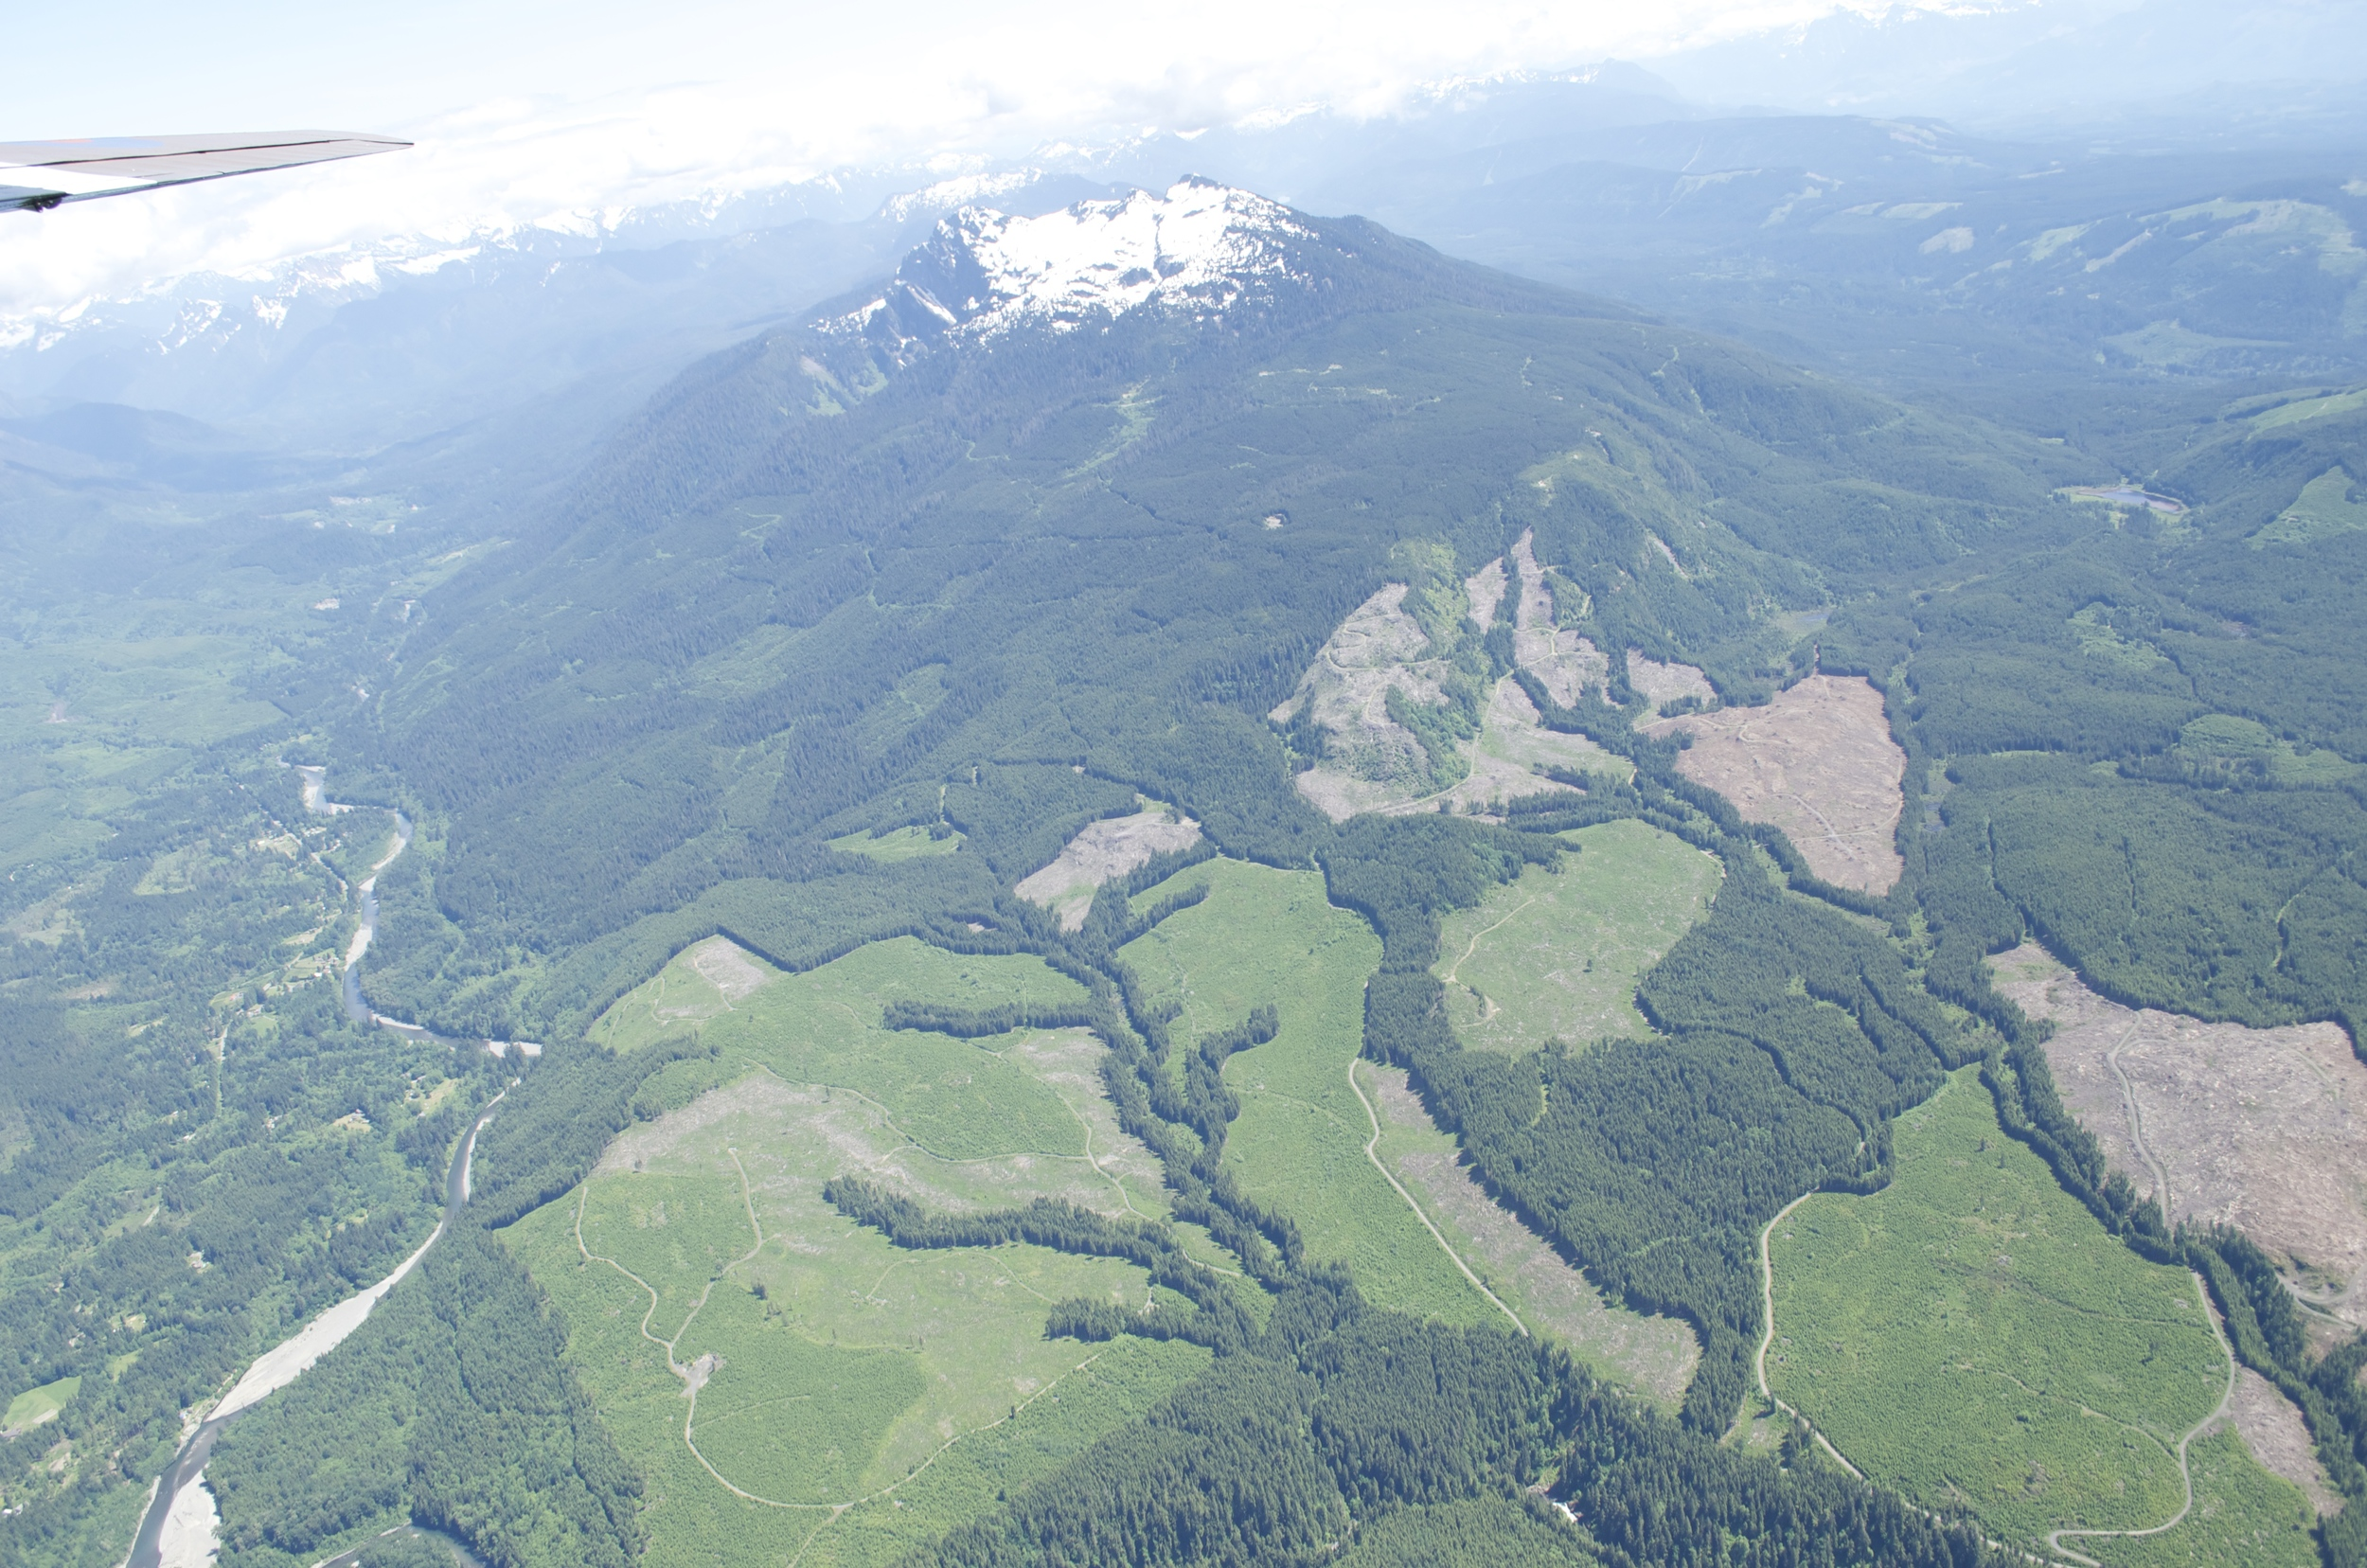 Snohomish County countryside